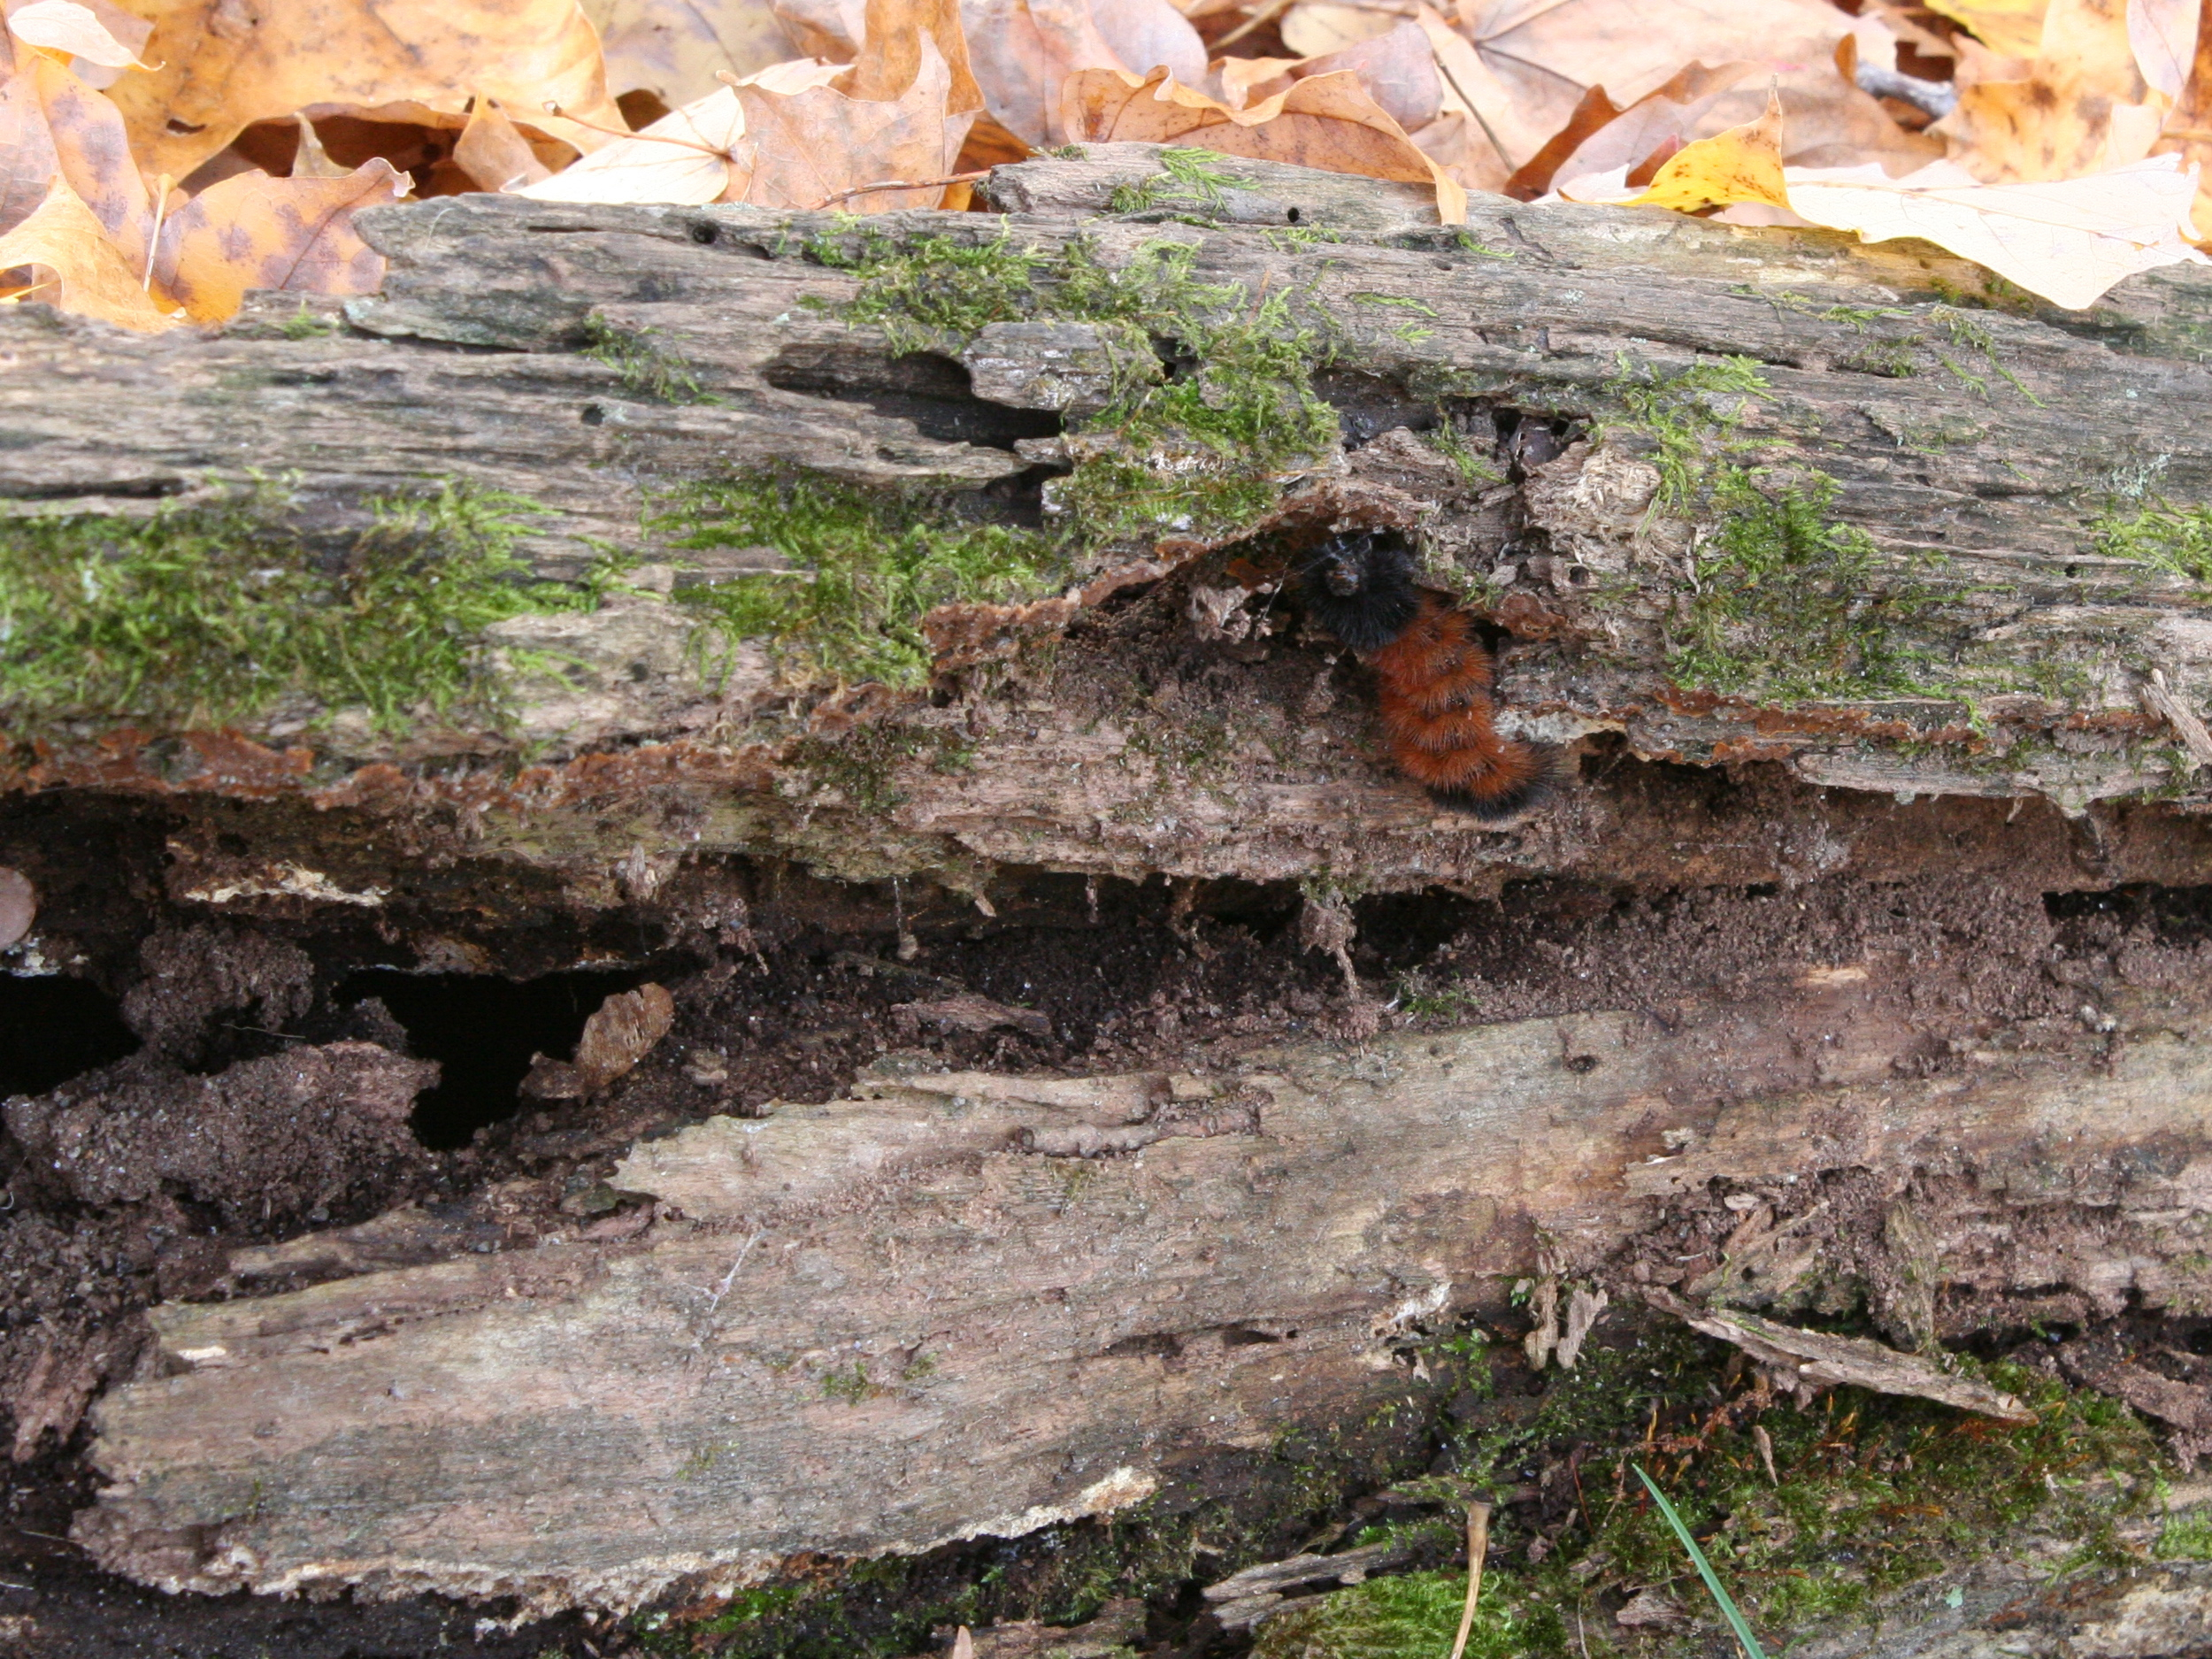 A fuzzy, orangish-brown and black striped caterpillar crawls along a decaying log with moss on it.